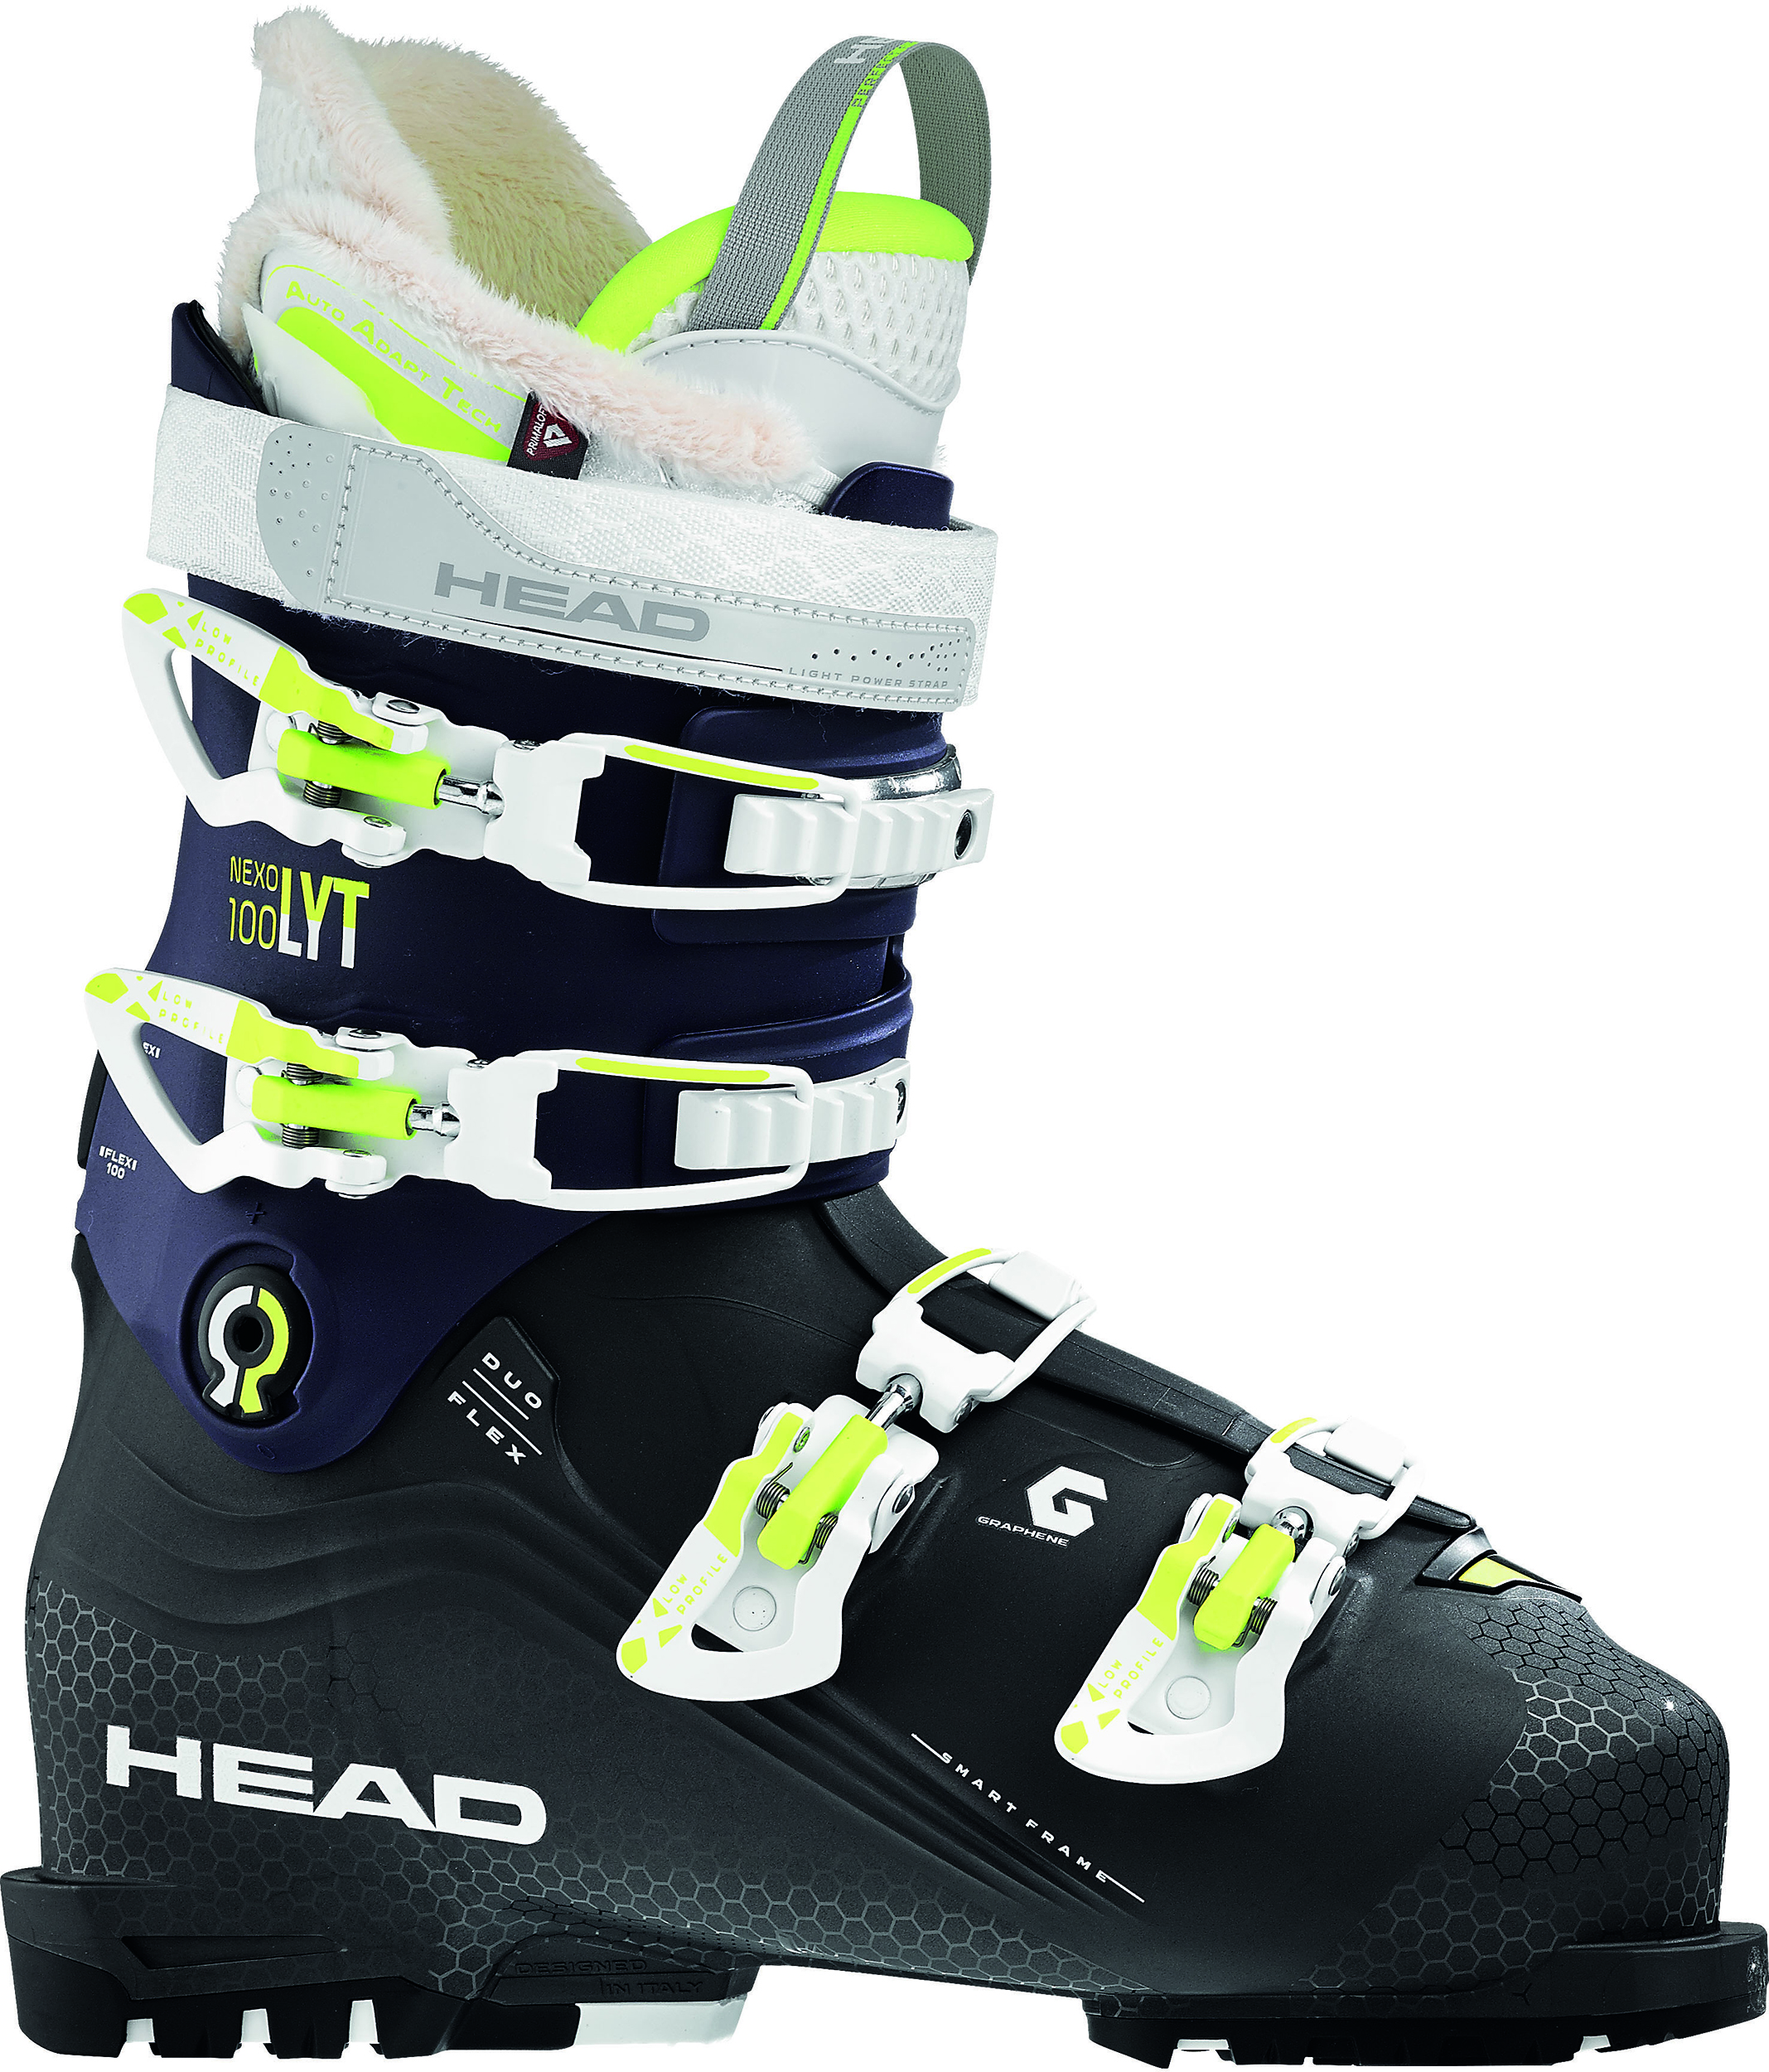 Downhill ski boots and accessories b9dc87a30